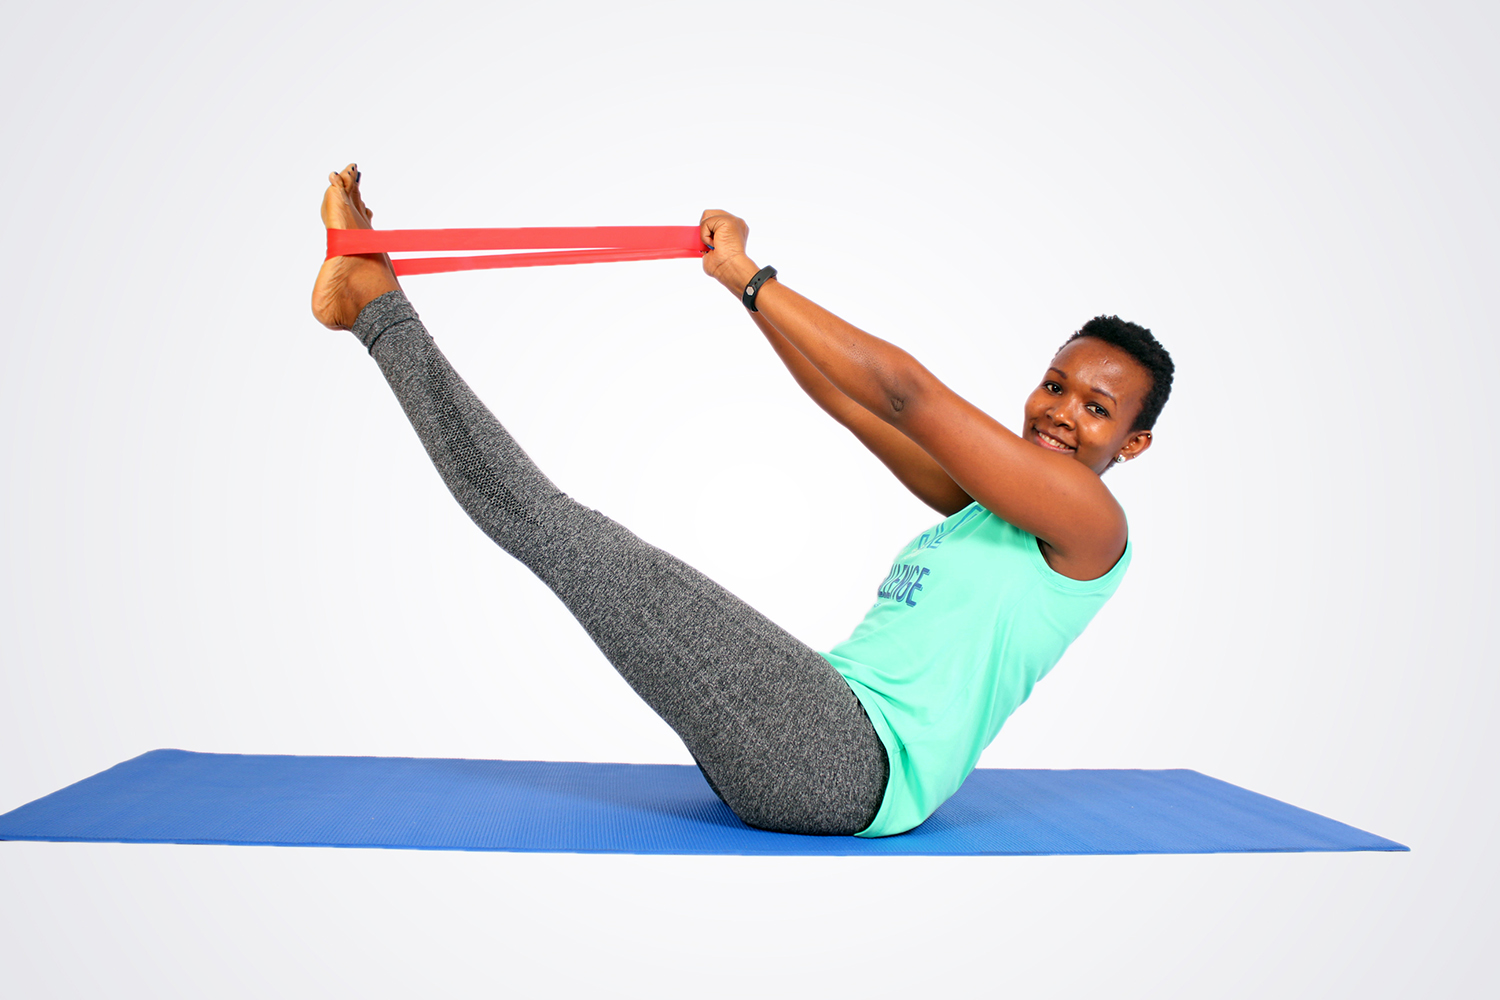 Smiling woman doing resistance band exercise on yoga mat